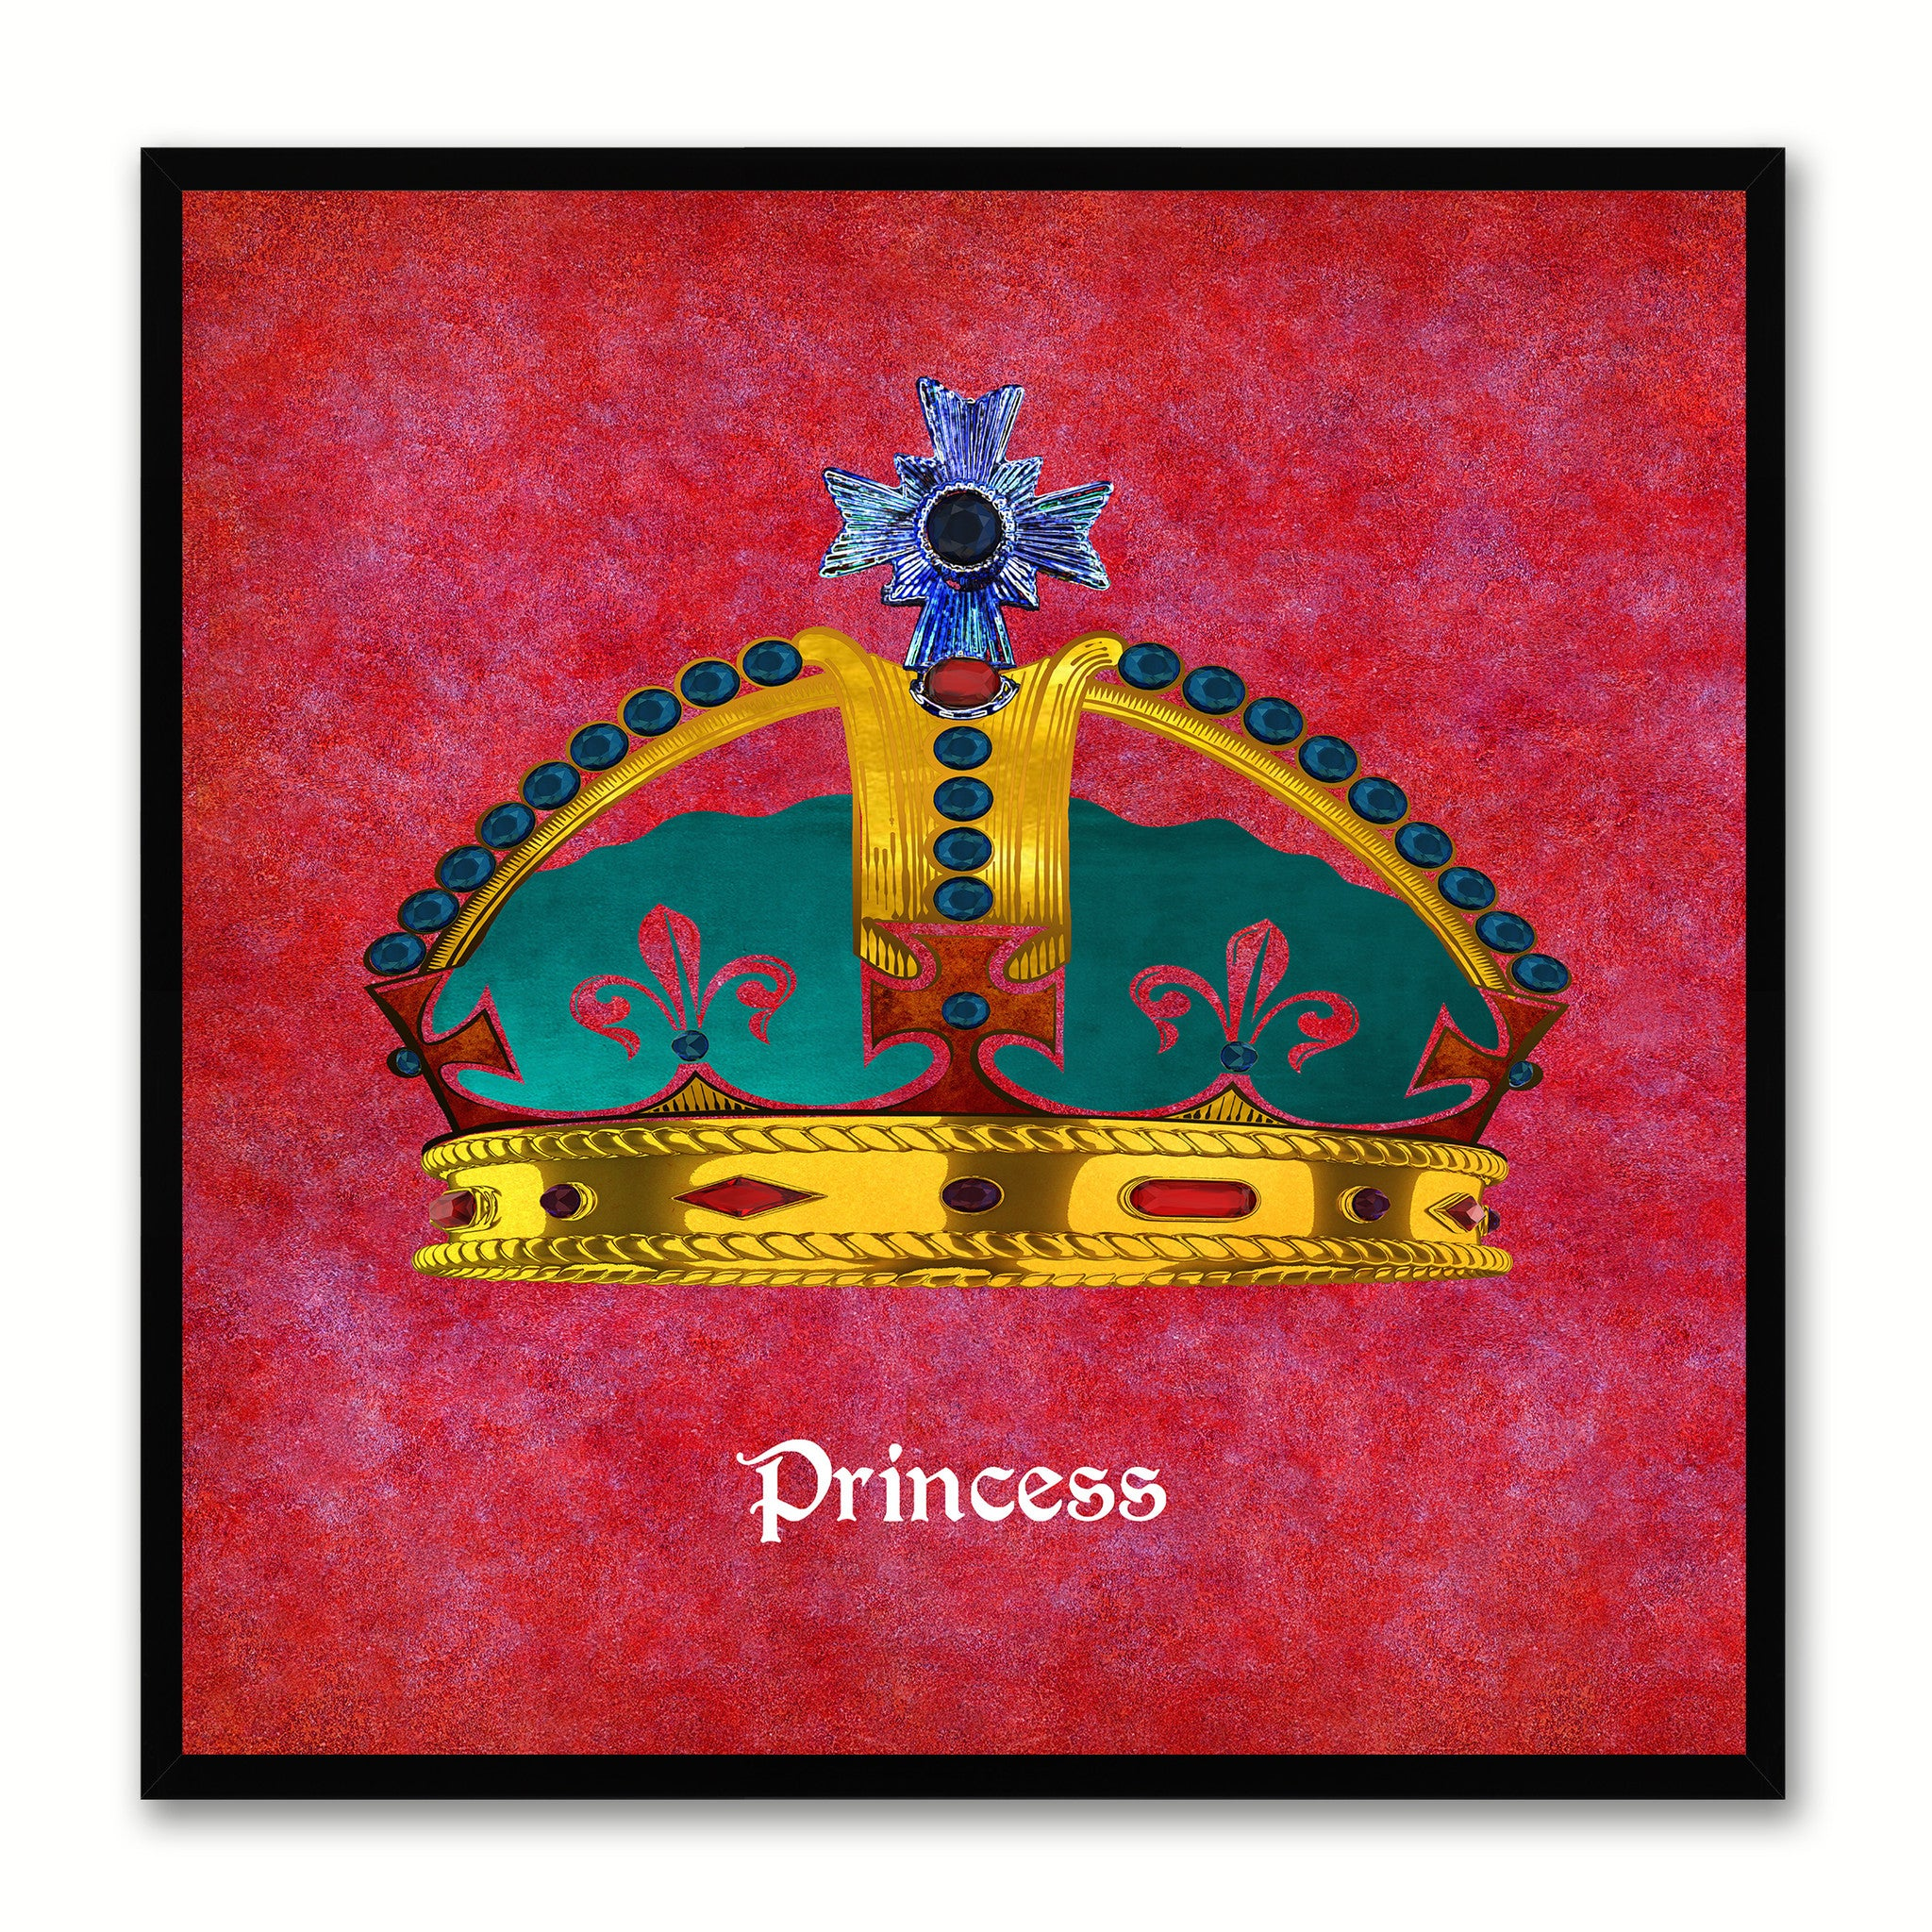 Princess Red Canvas Print Black Frame Kids Bedroom Wall Home Décor